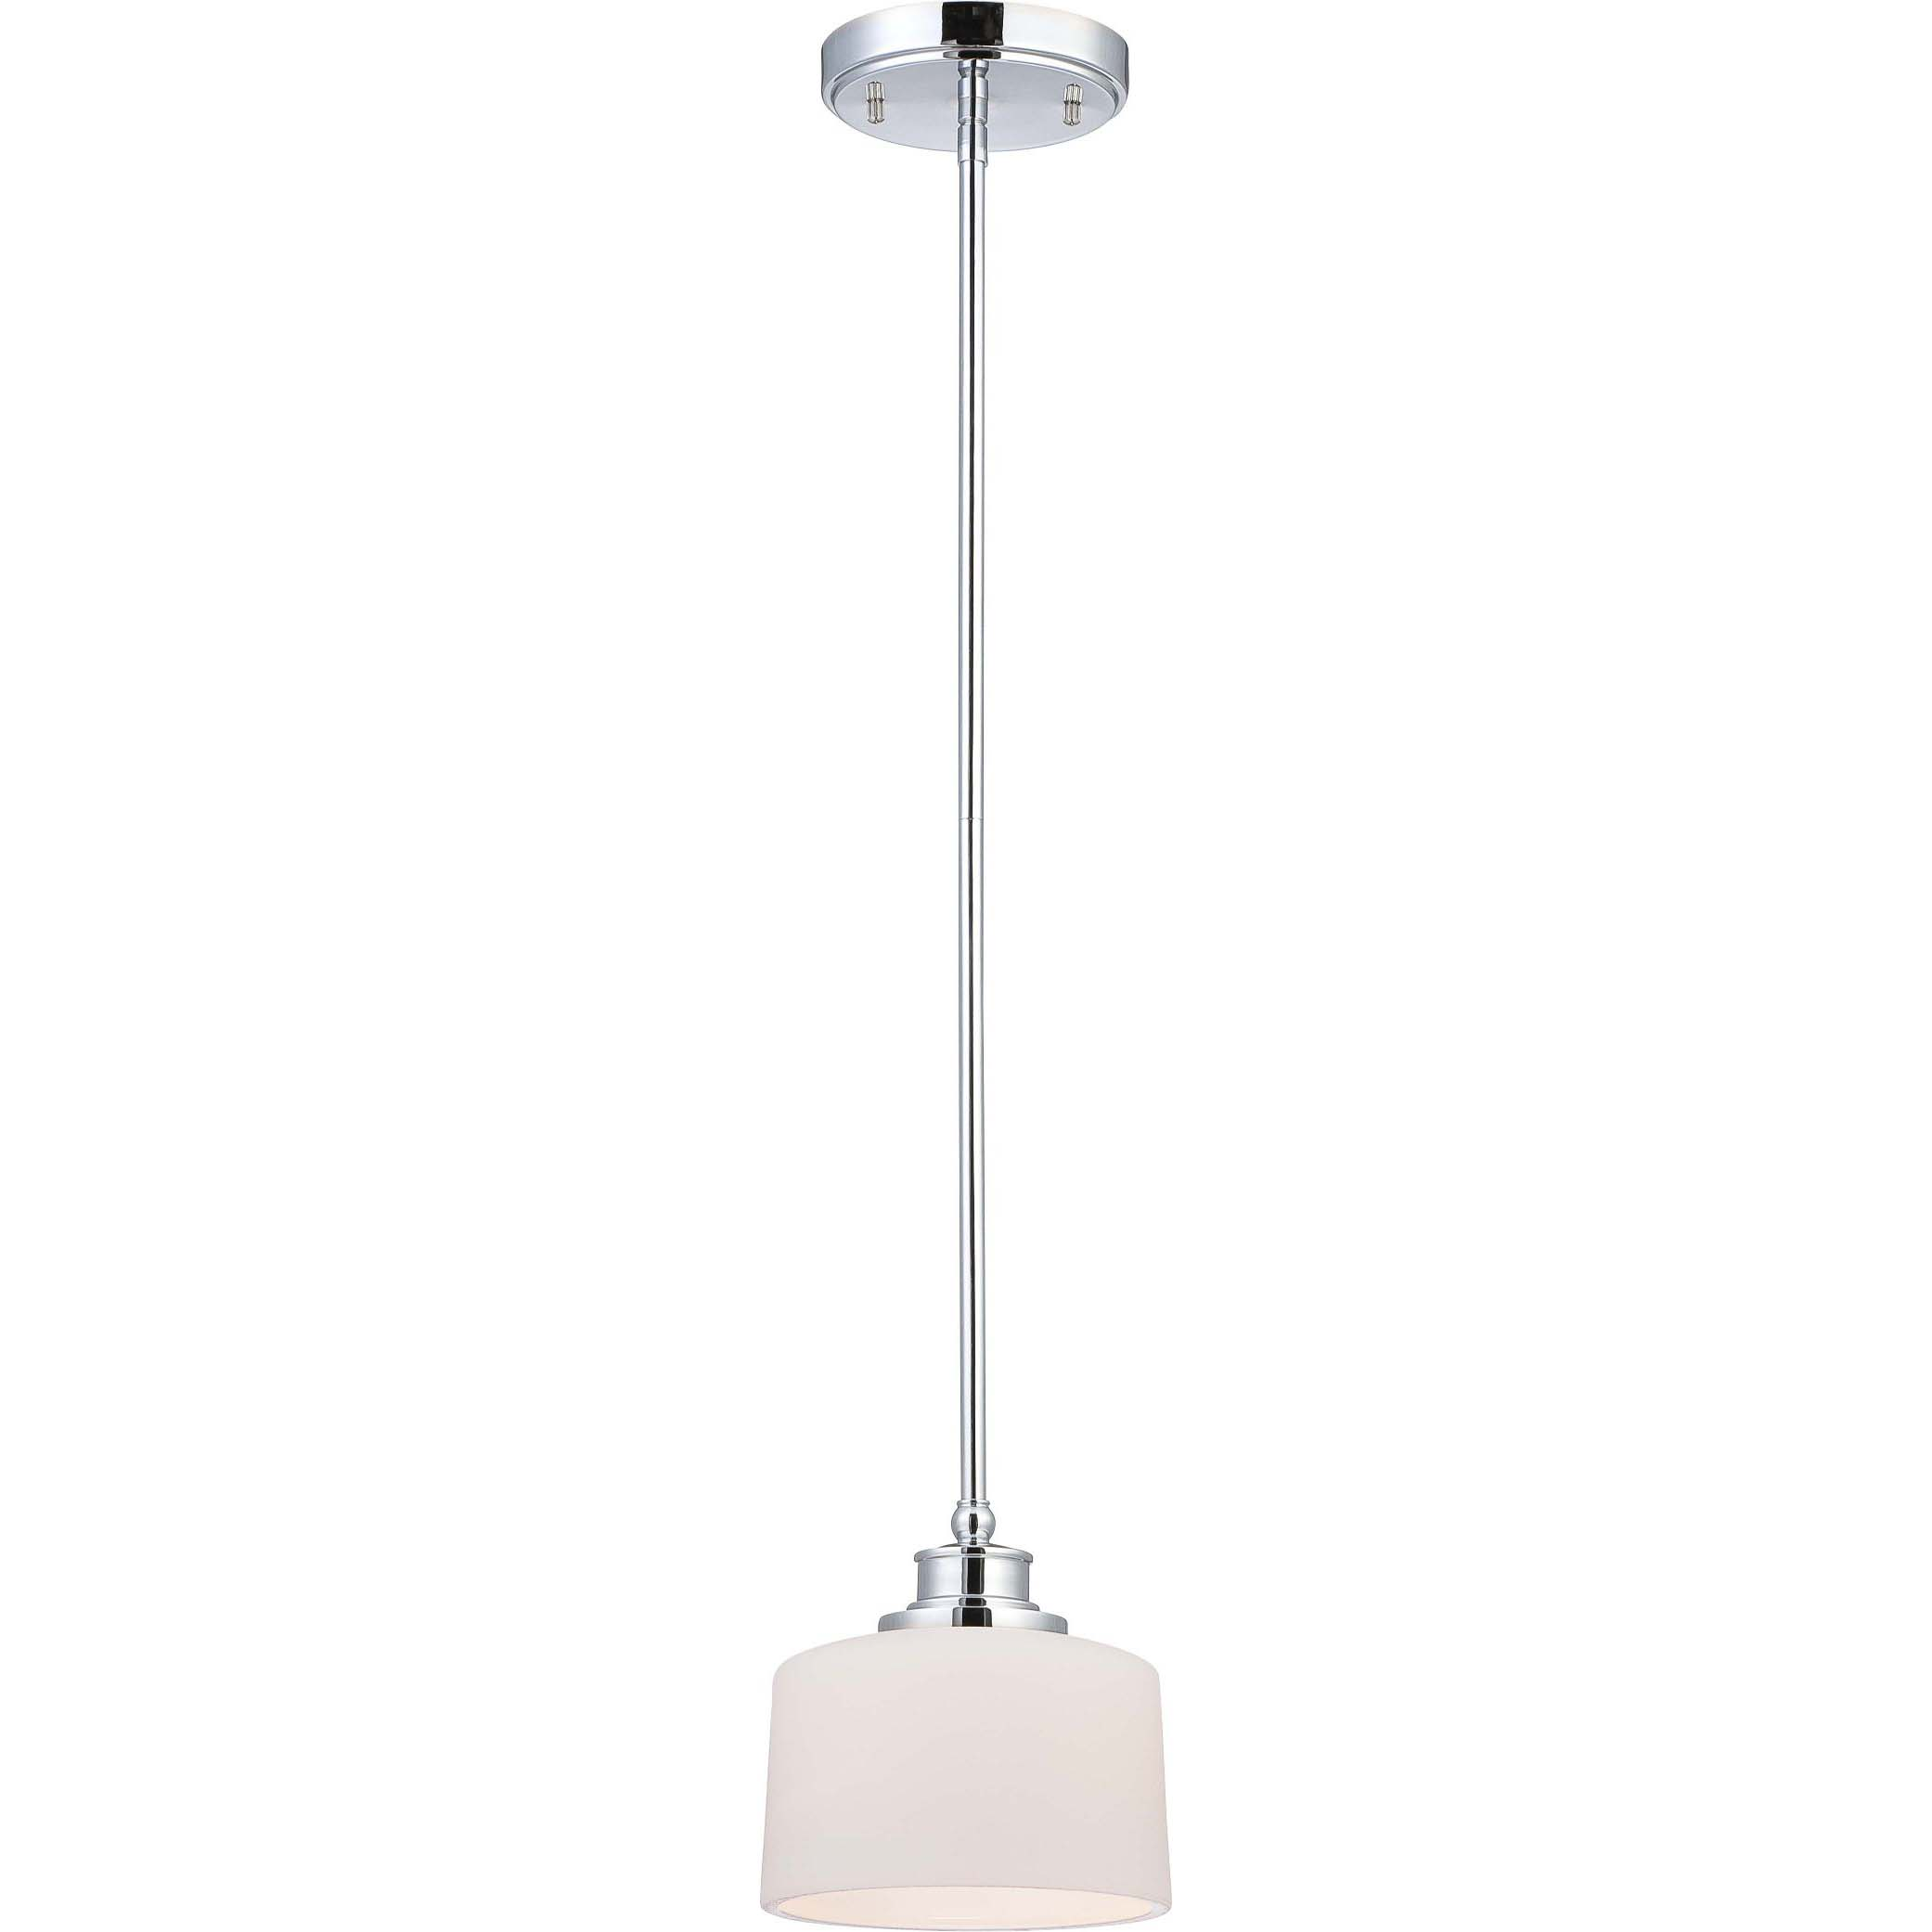 Soho 1 Light Polished Chrome With Satin White Glass Mini Pendant - Thumbnail 0